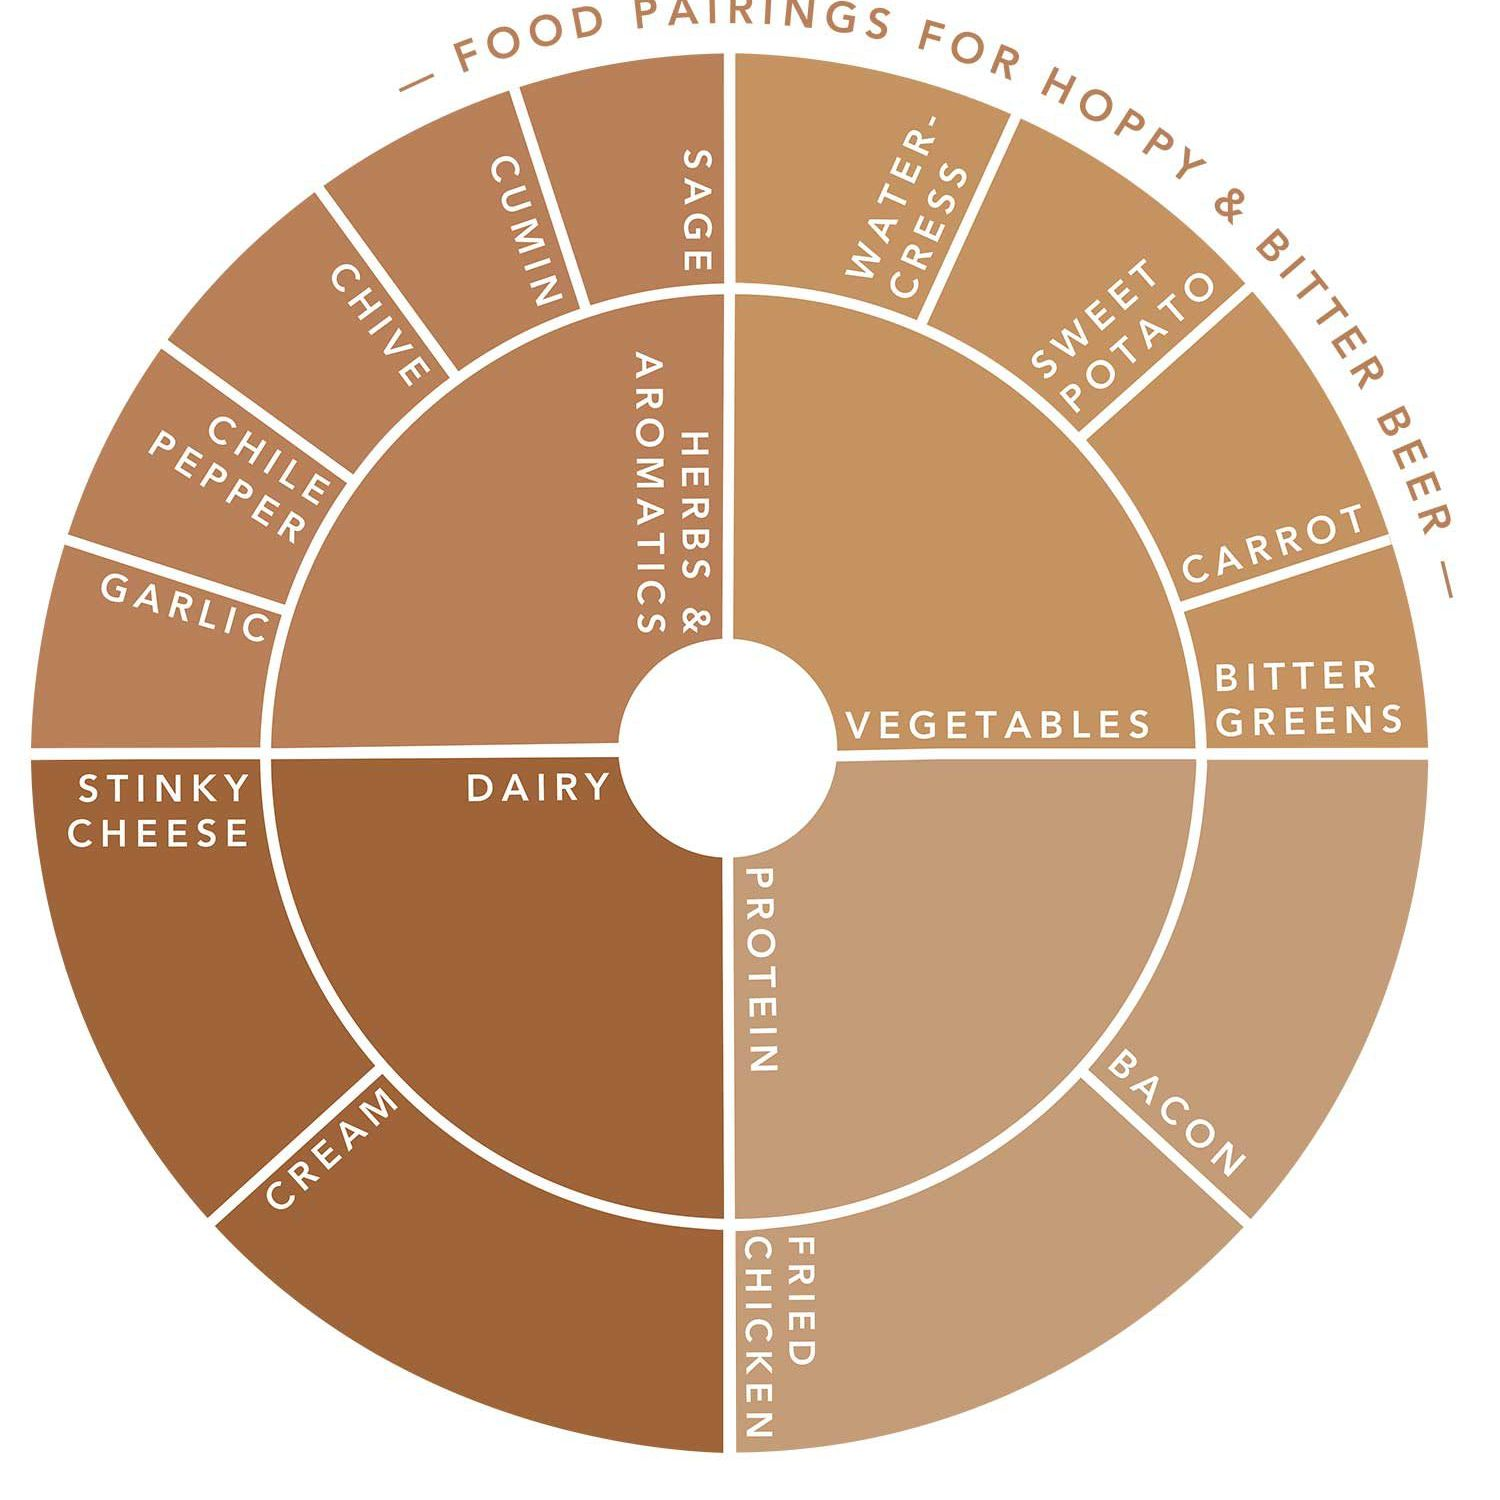 A graphic of a colored wheel showing the food categories that pair best with hoppy and bitter beers